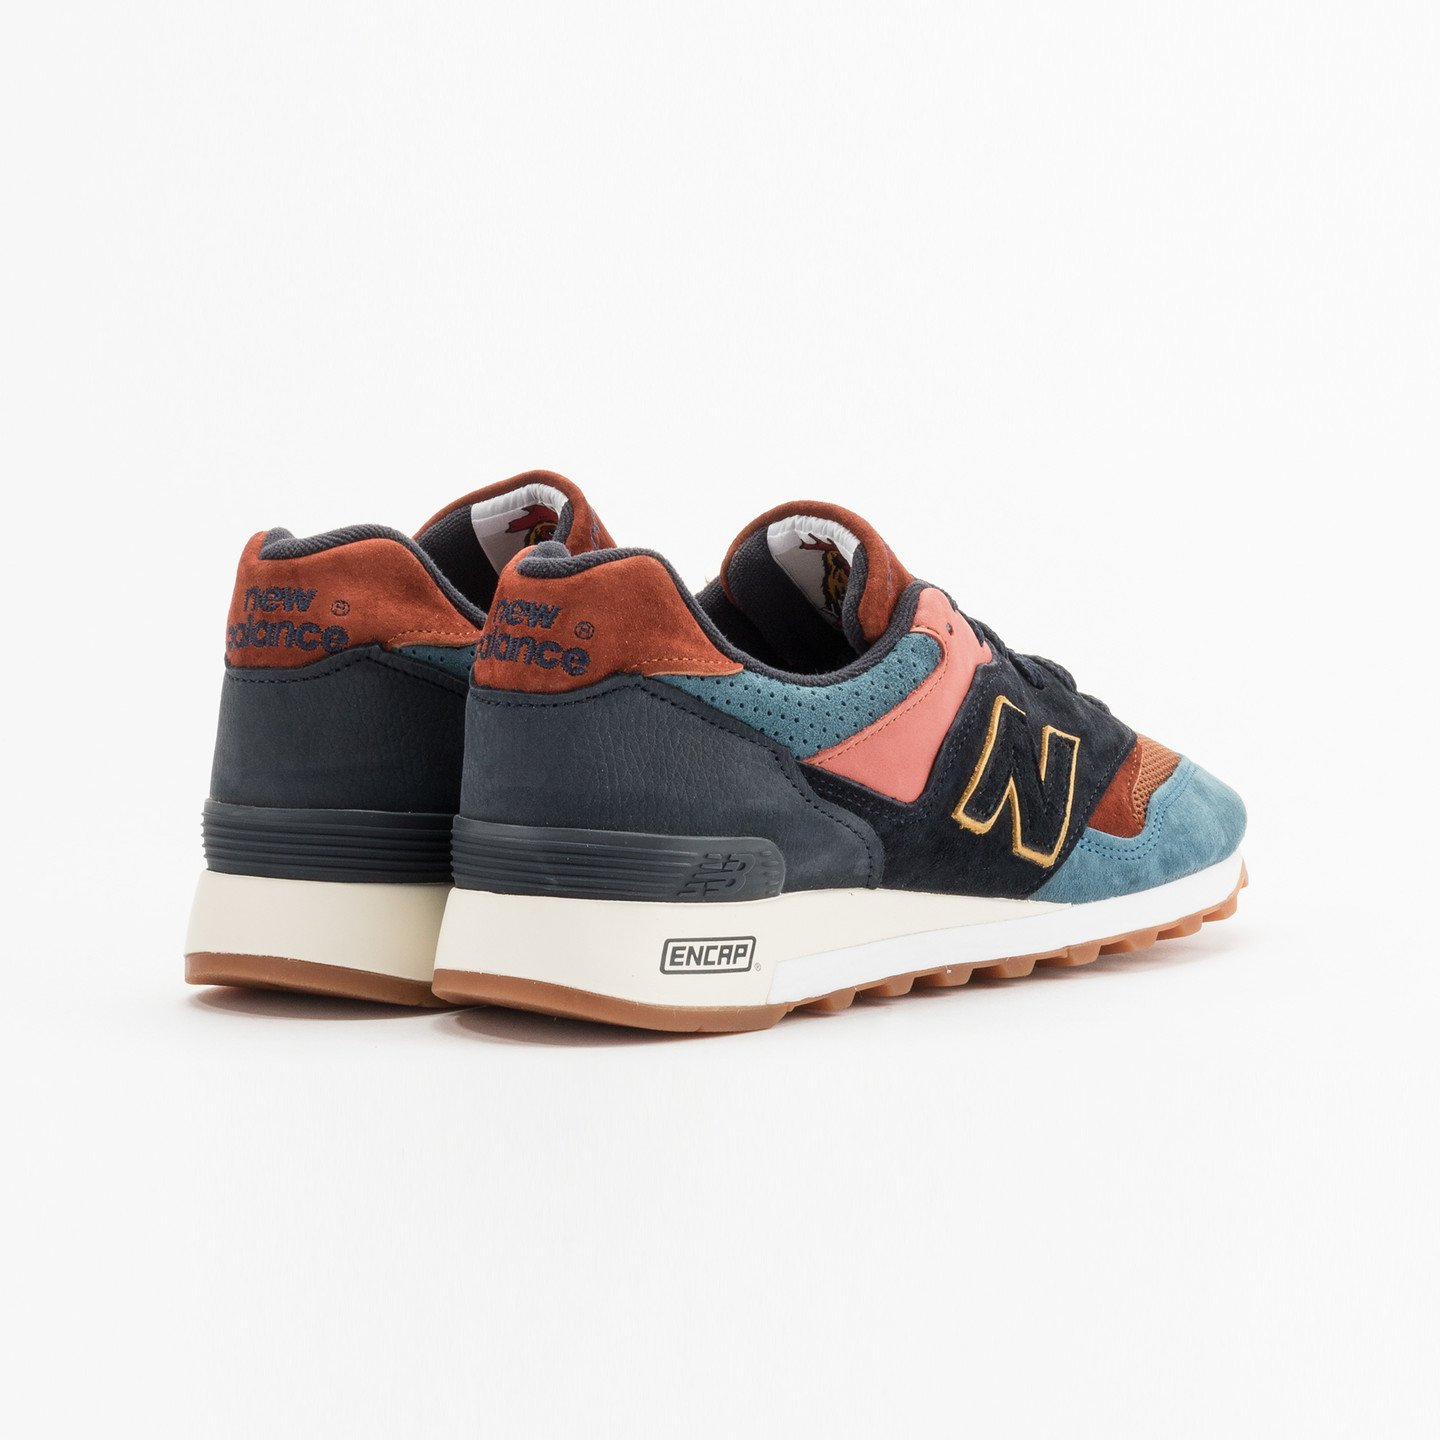 New Balance M577 YP Made in UK 'Yard Pack' Multicolor M577YP-44